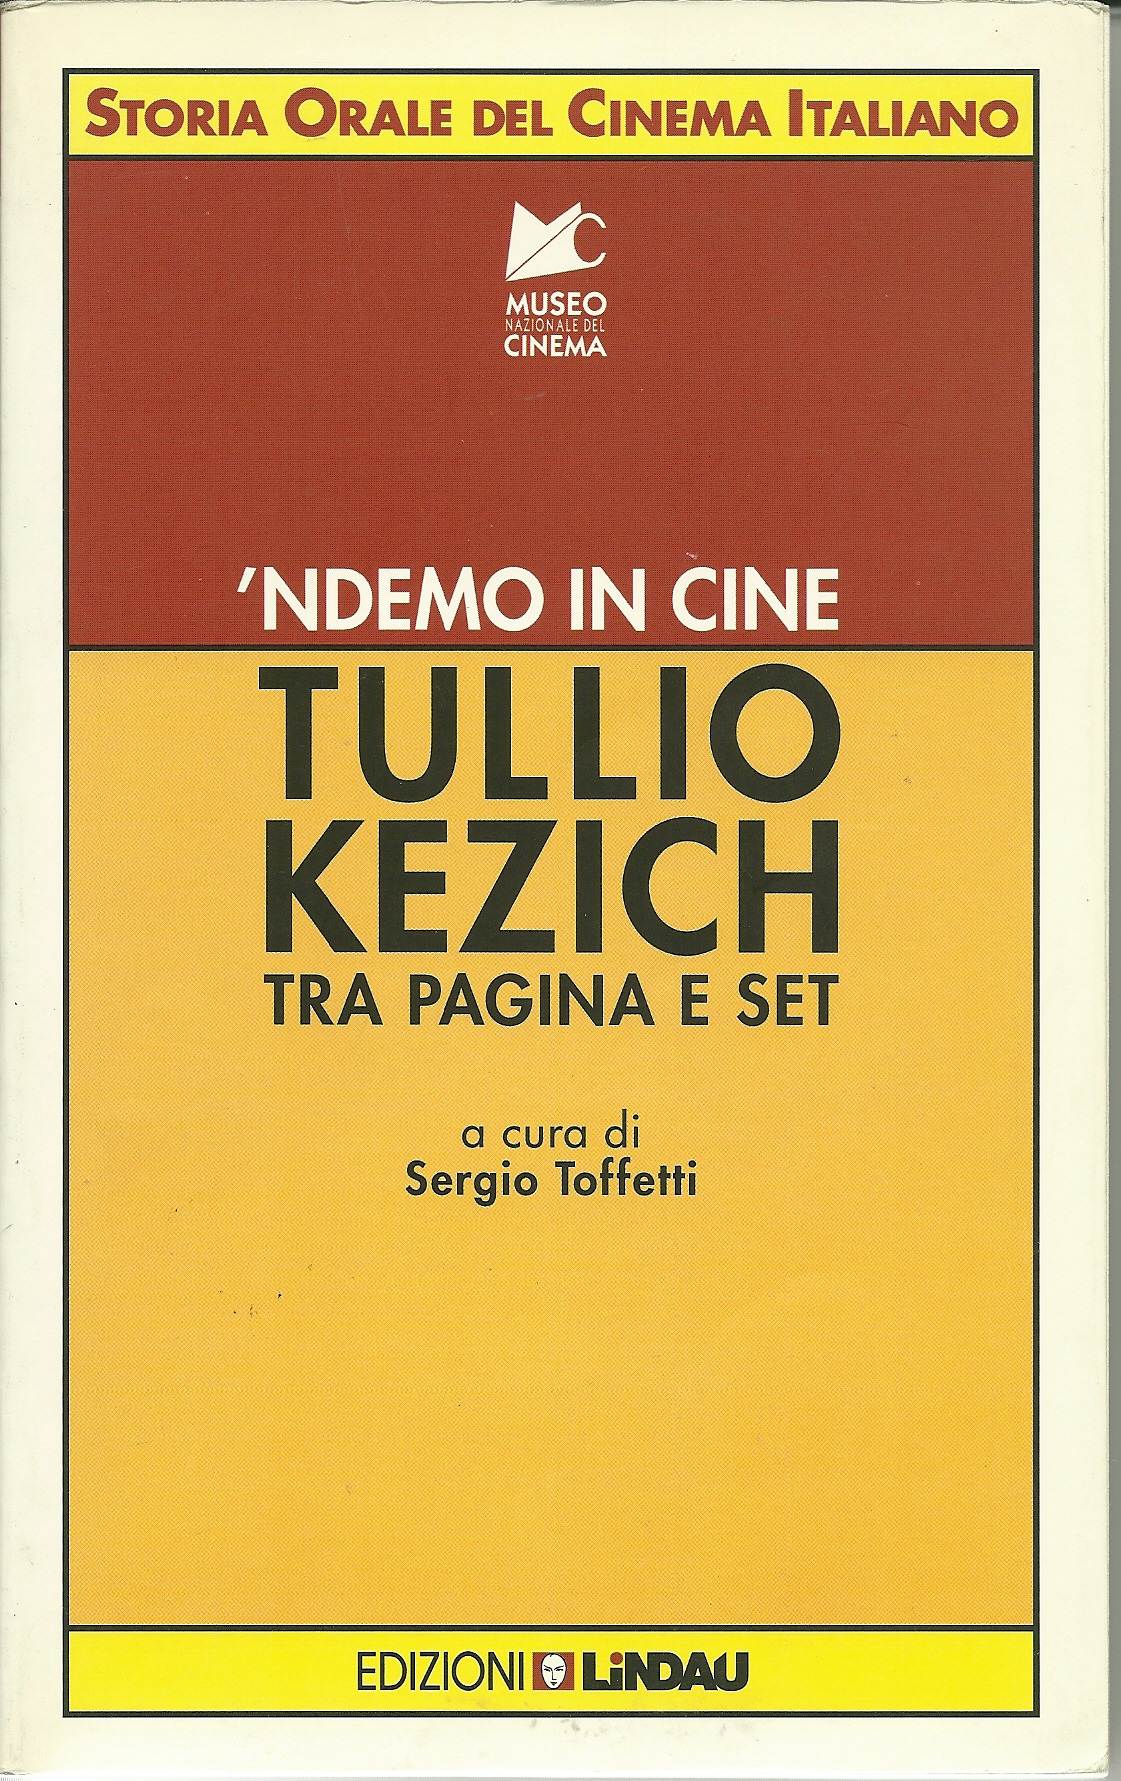 'Ndemo in cine